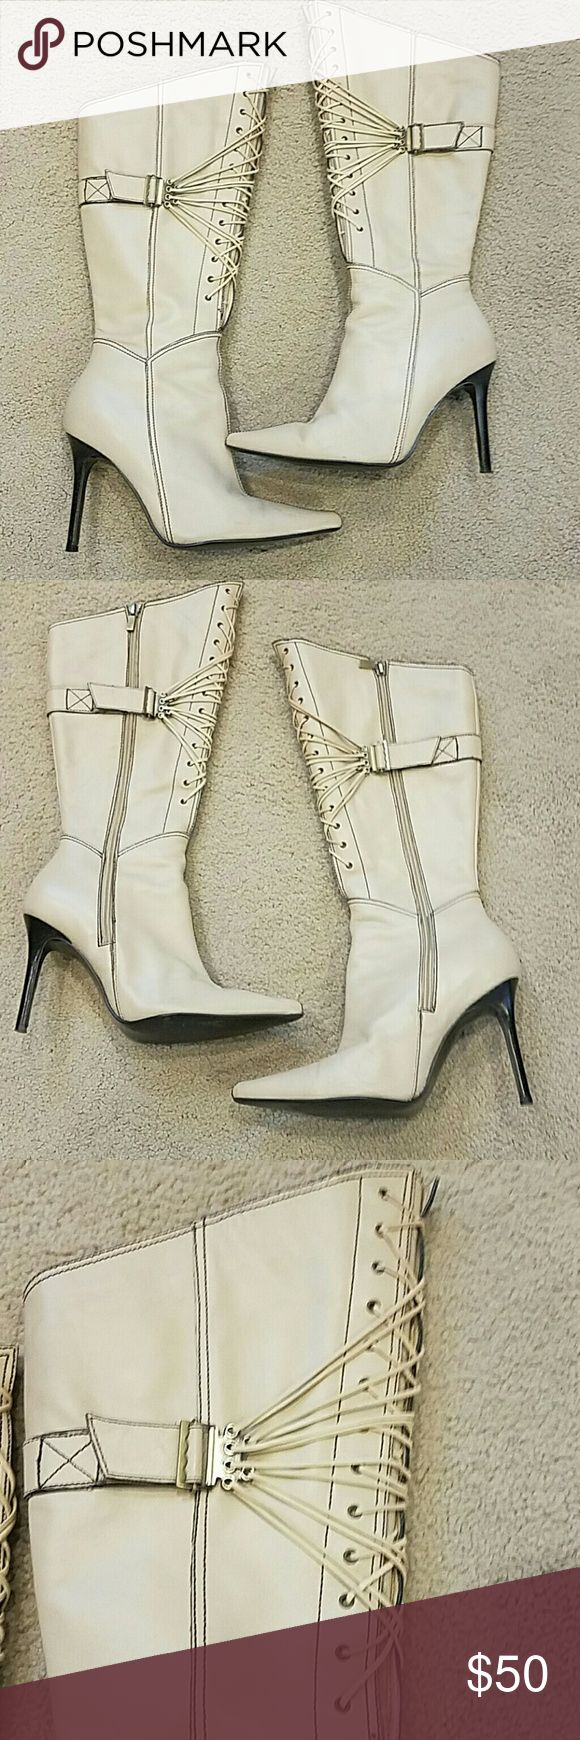 Cream high heeled boots Victoria Secret,leather Pre loved, worn 2x, size 7.5, Victoria Secret Colin Stuart, zip up inside, 4 inches, pointy toe, sexy! Victoria Secret Colin Stuart  Shoes Heeled Boots